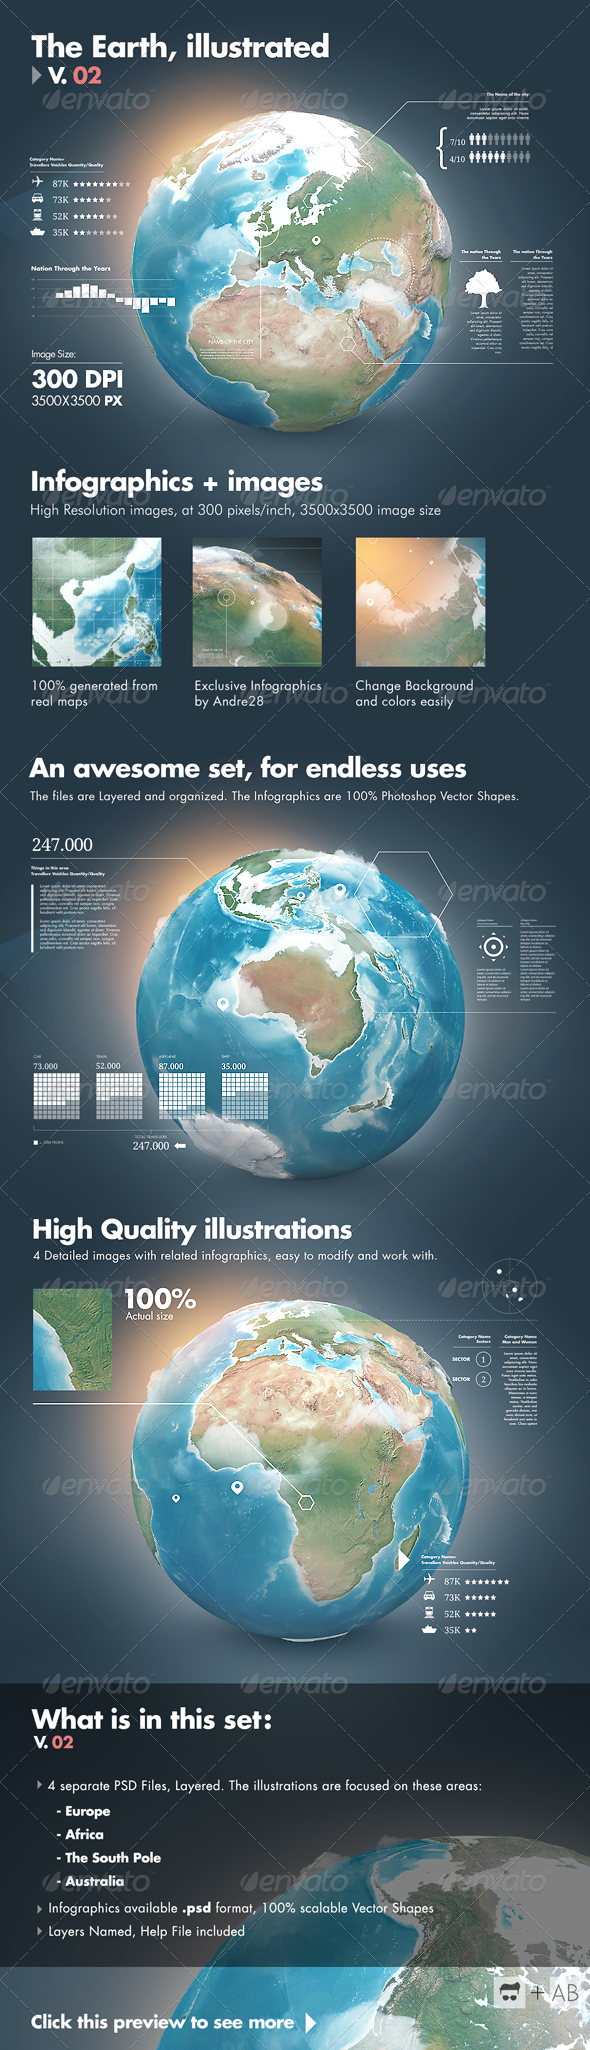 GraphicRiver Earth Illustrated 3D World and Infographics V2 2939336